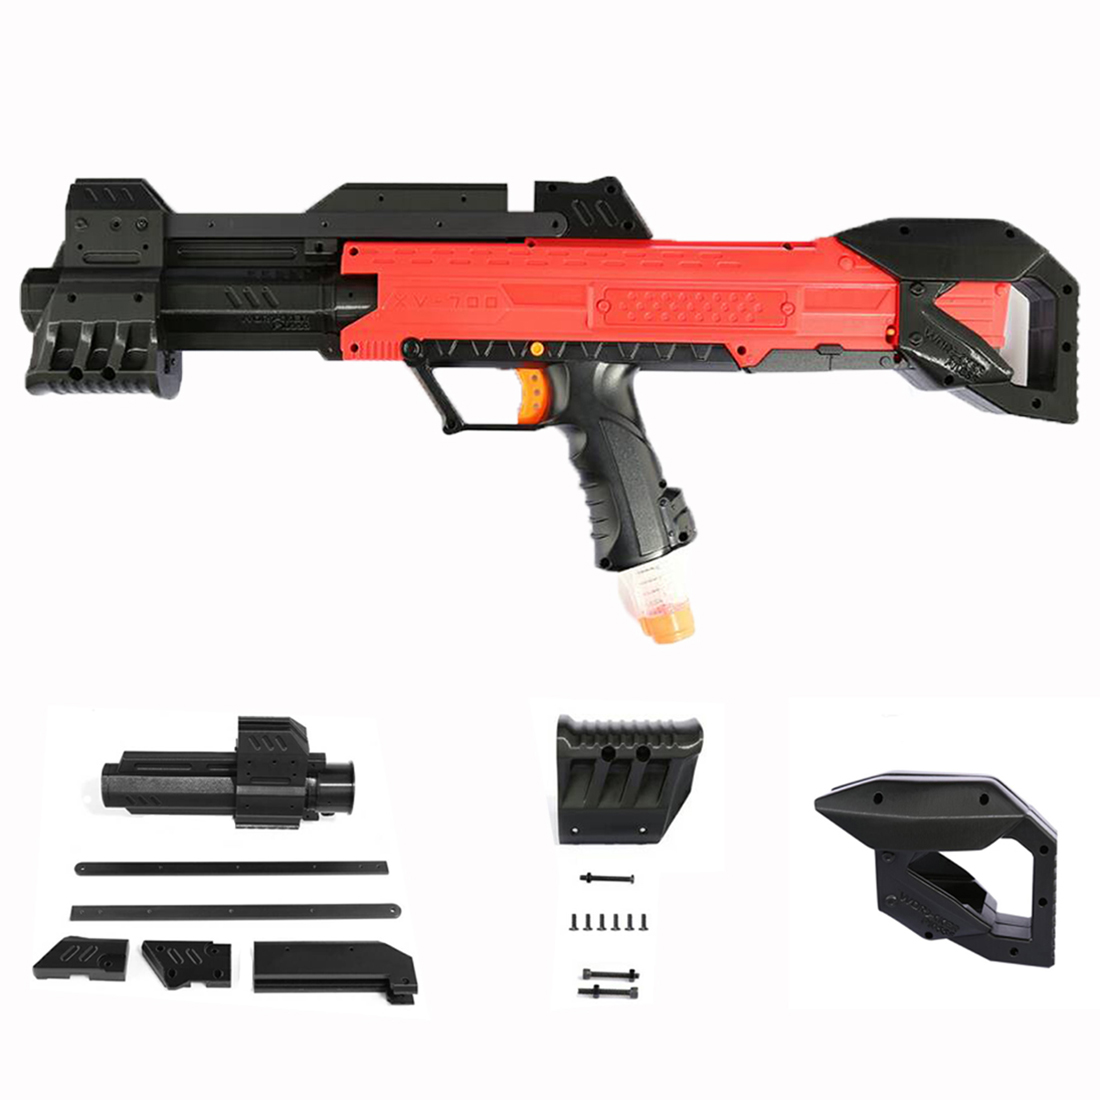 WORKER F10555 3D Printing Front Tube Pull-down Kit + Shoulder Stock for Nerf Rival Apollo XV-700 - Black садовая детская тяпка truper atj kid 10555